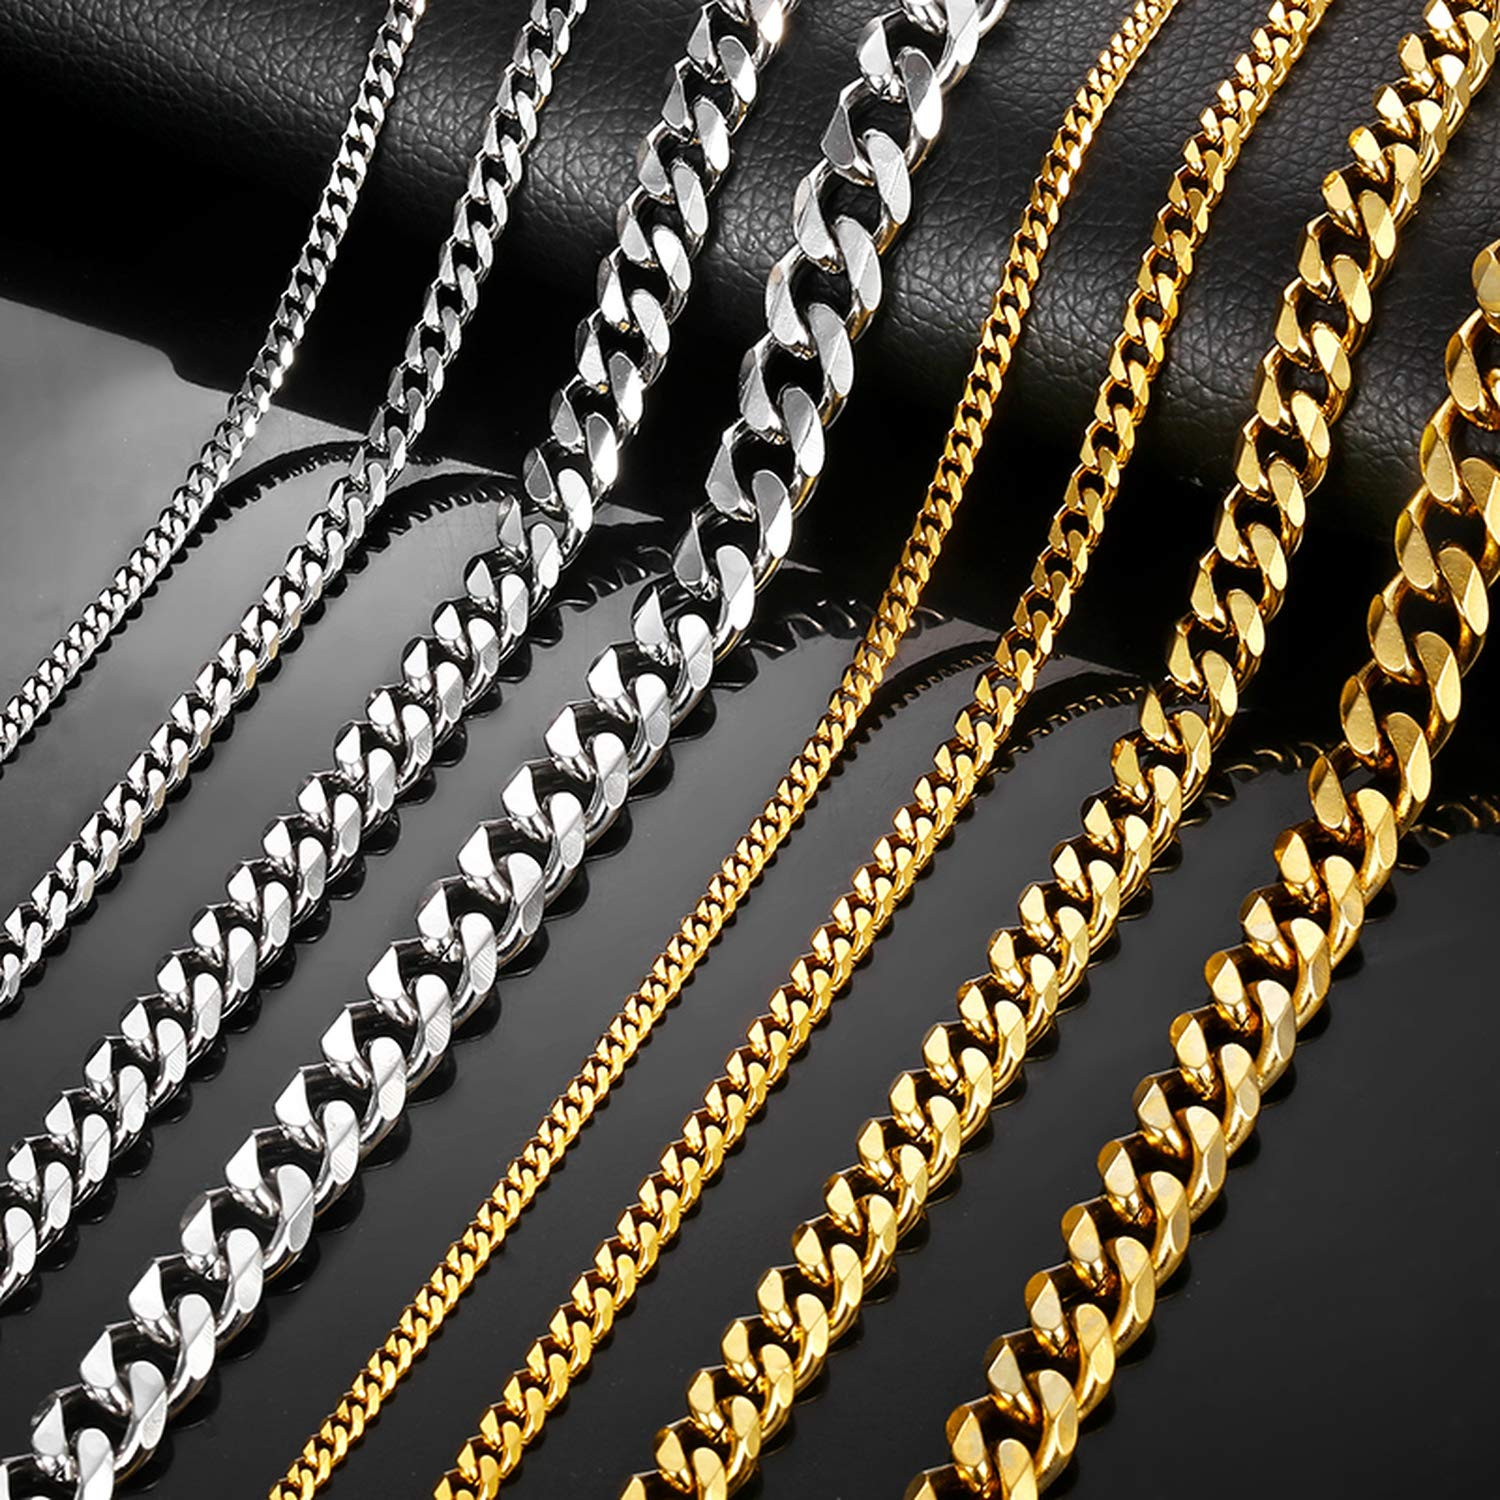 Mens Necklace Chain Stainless Steel Gold Silver Black 2019 Necklace for Men Jewelry Gift,k59